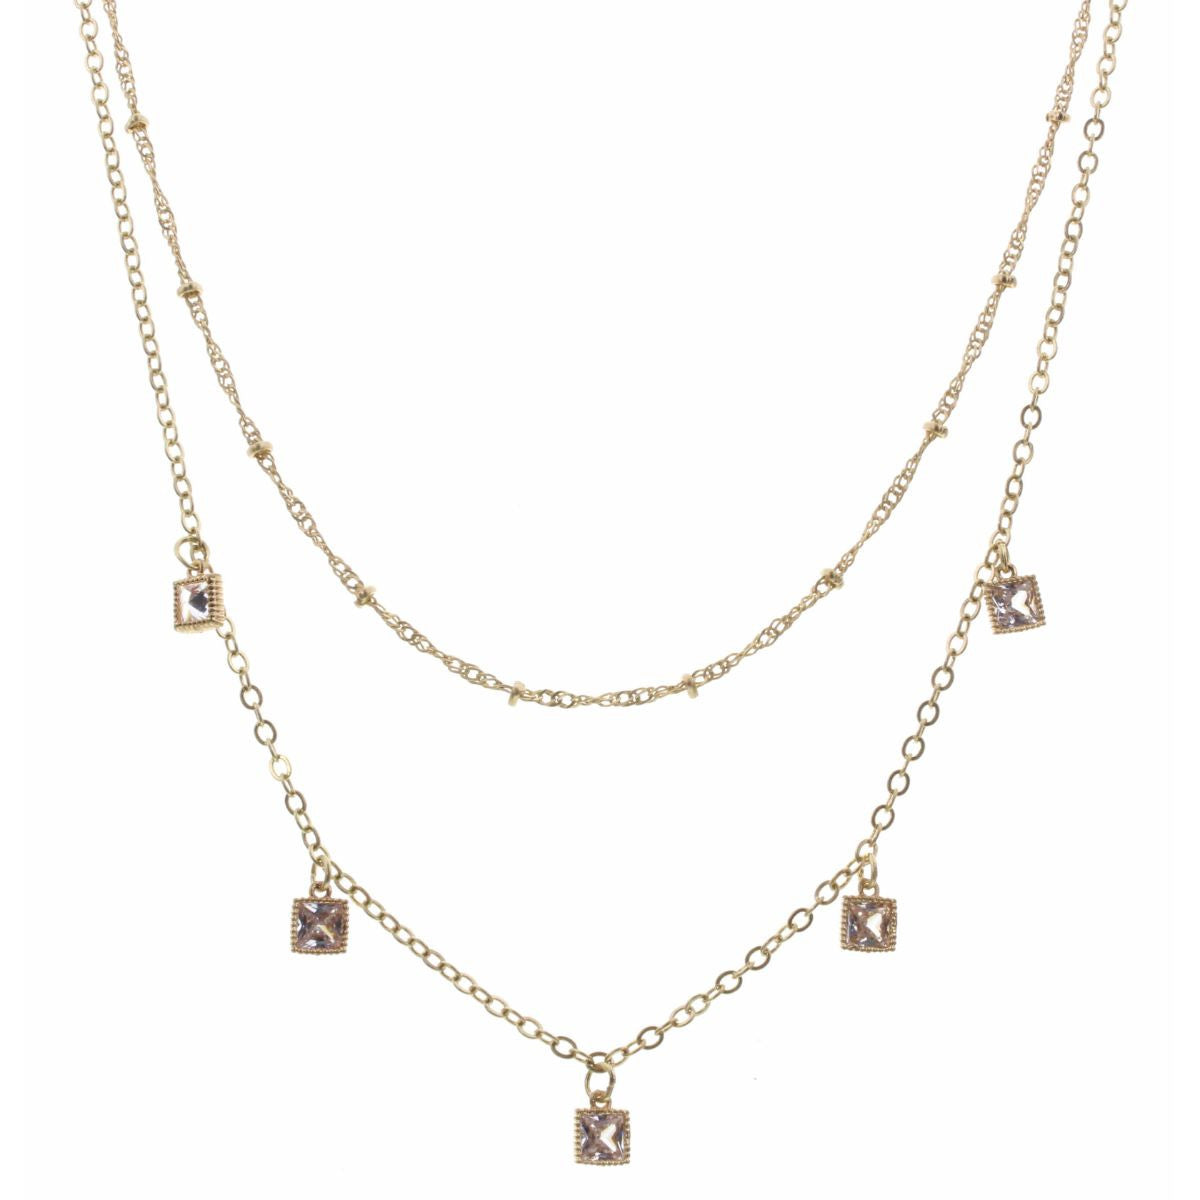 "16"" DOUBLE LAYER SQUARE RHINESTONE NECKLACE"